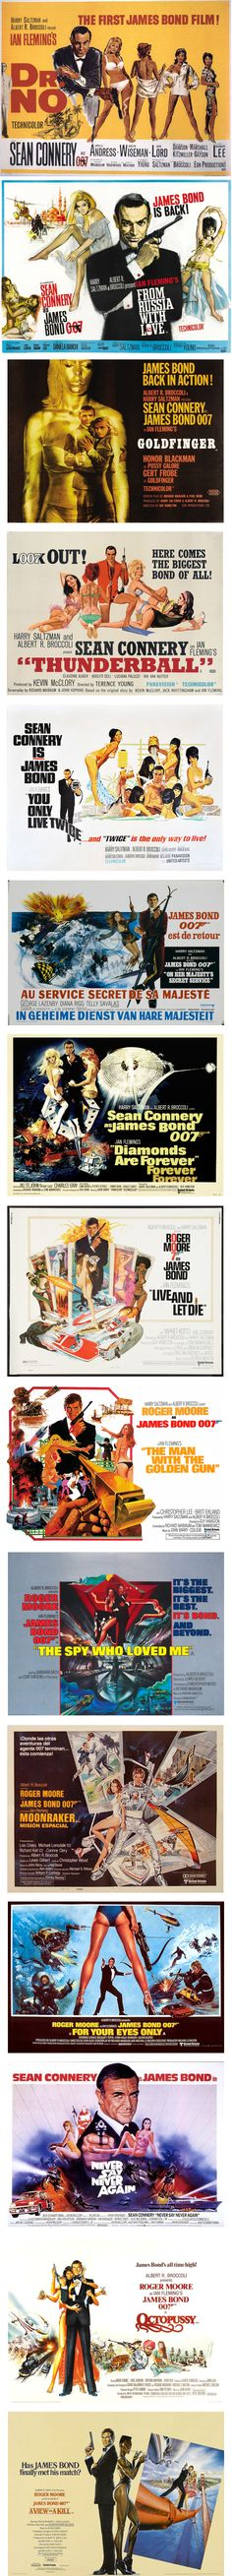 James Bond 007 - Films posters 1962/1985 #Sean Connery #George Lazenby #Roger Moore